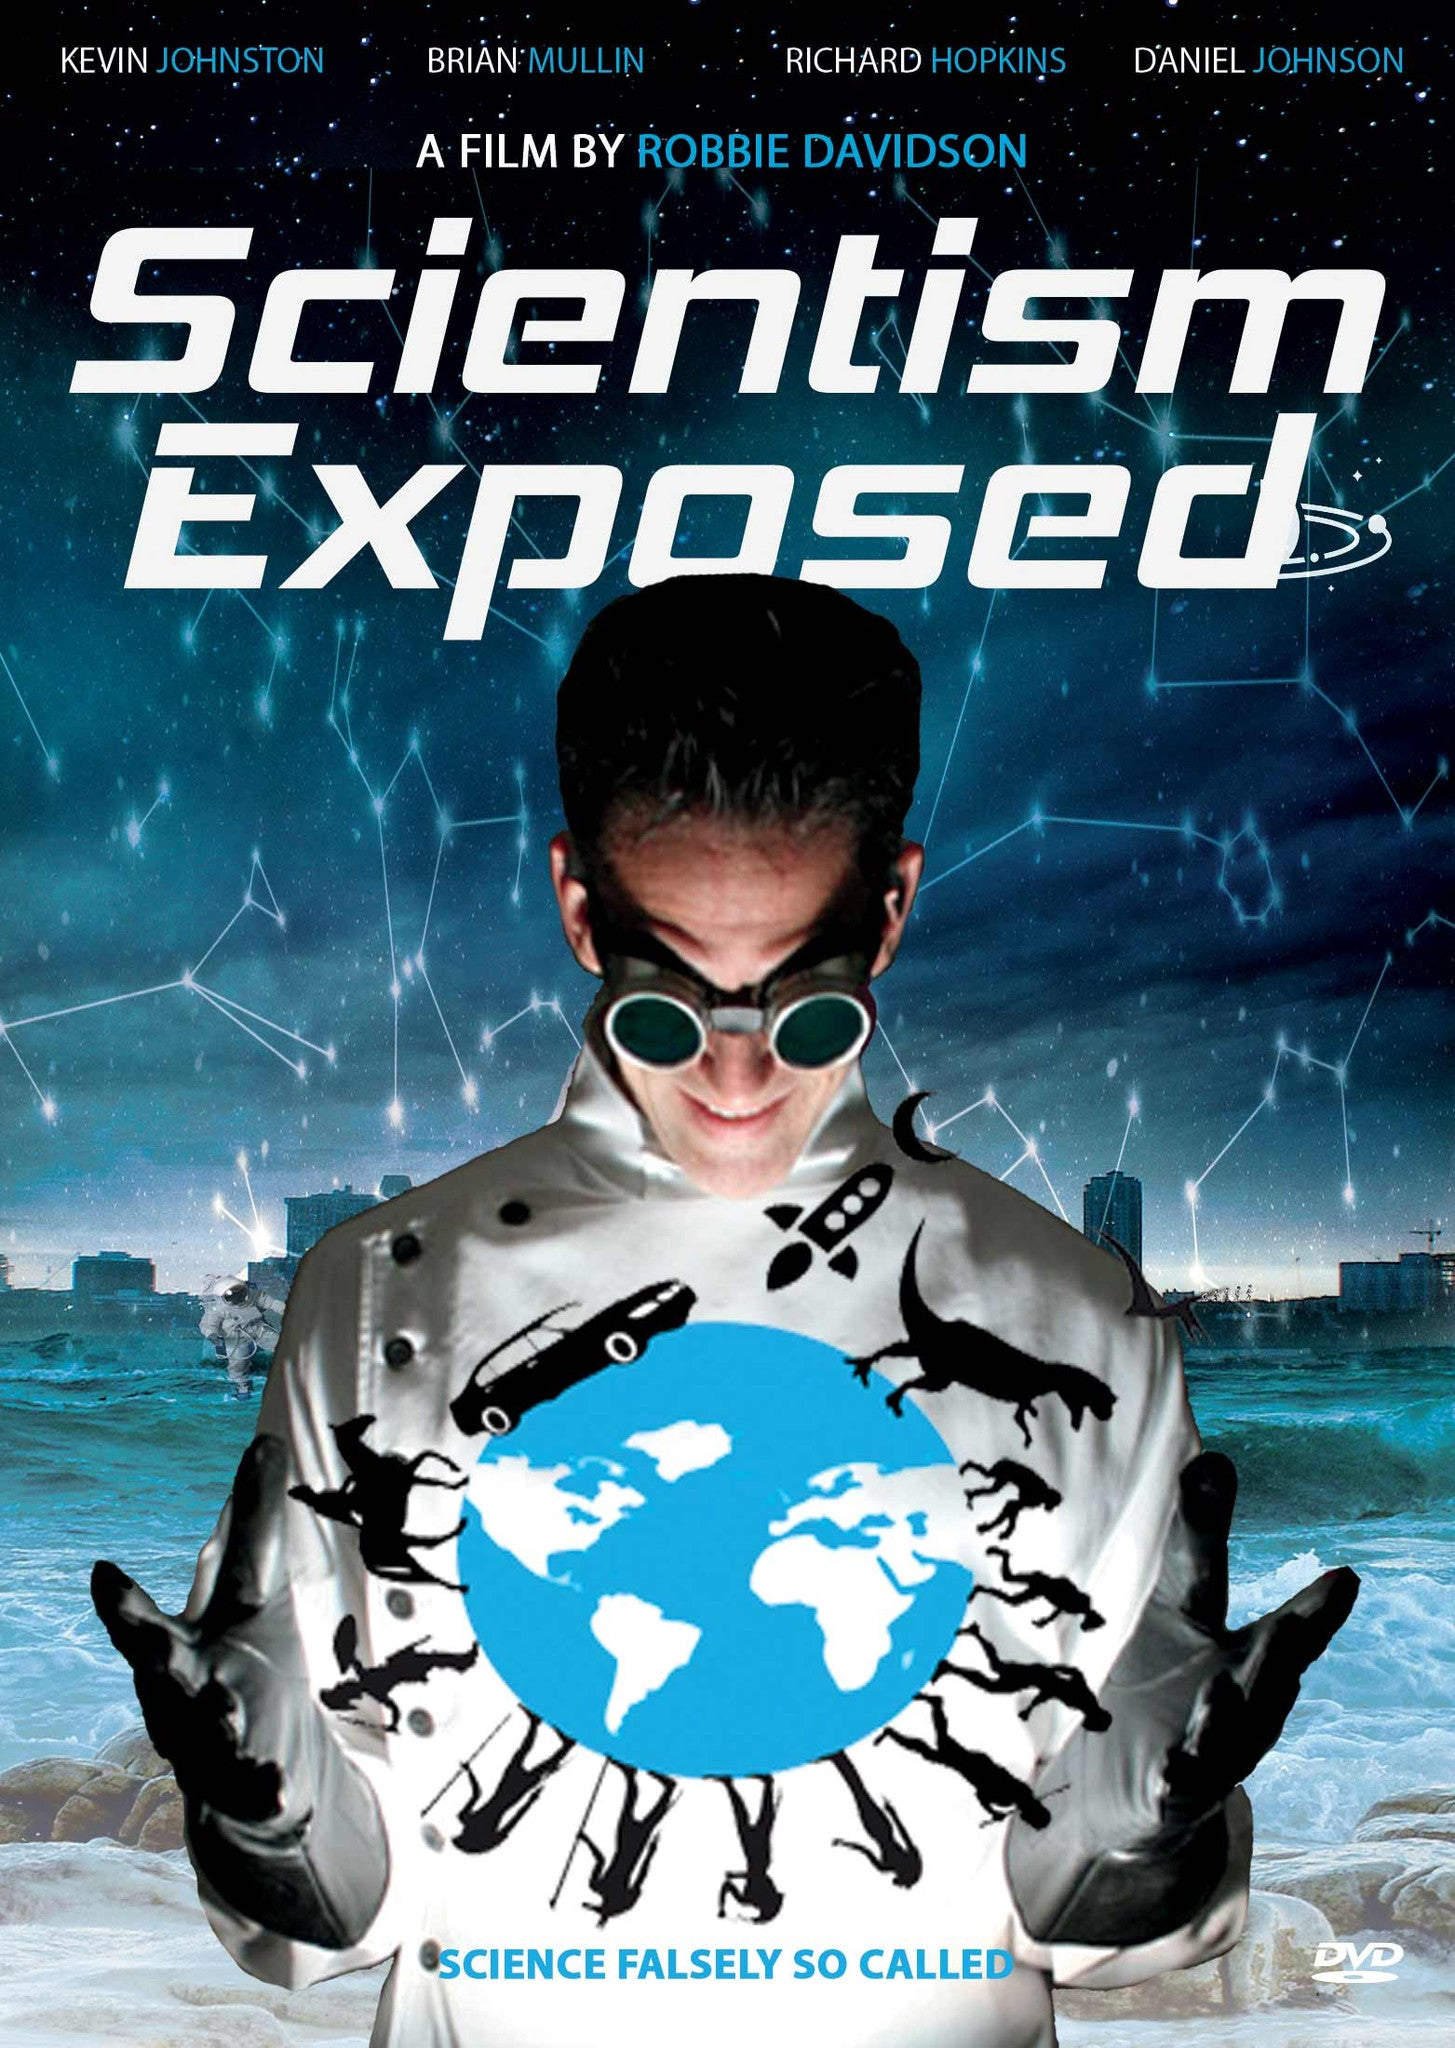 Scientism Exposed DVD